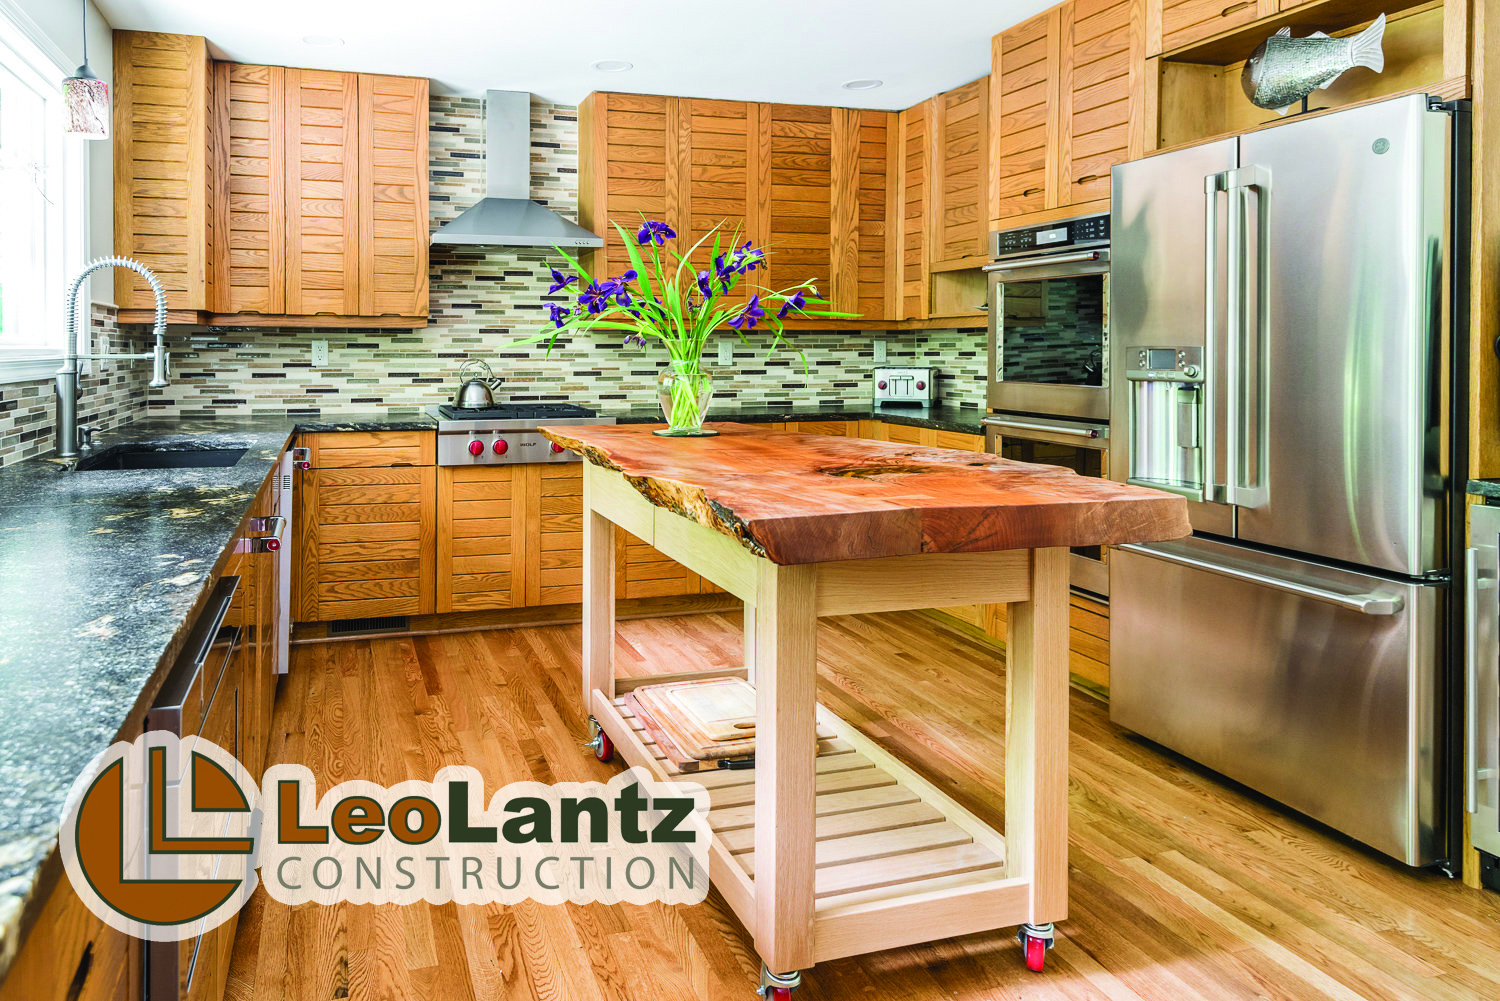 Residential Kitchen Under $100,000 - Leo Lantz ConstructionHerman Allen Plumbing, Heating & CoolingMorris Tile DistributorsPella Windows & Doors